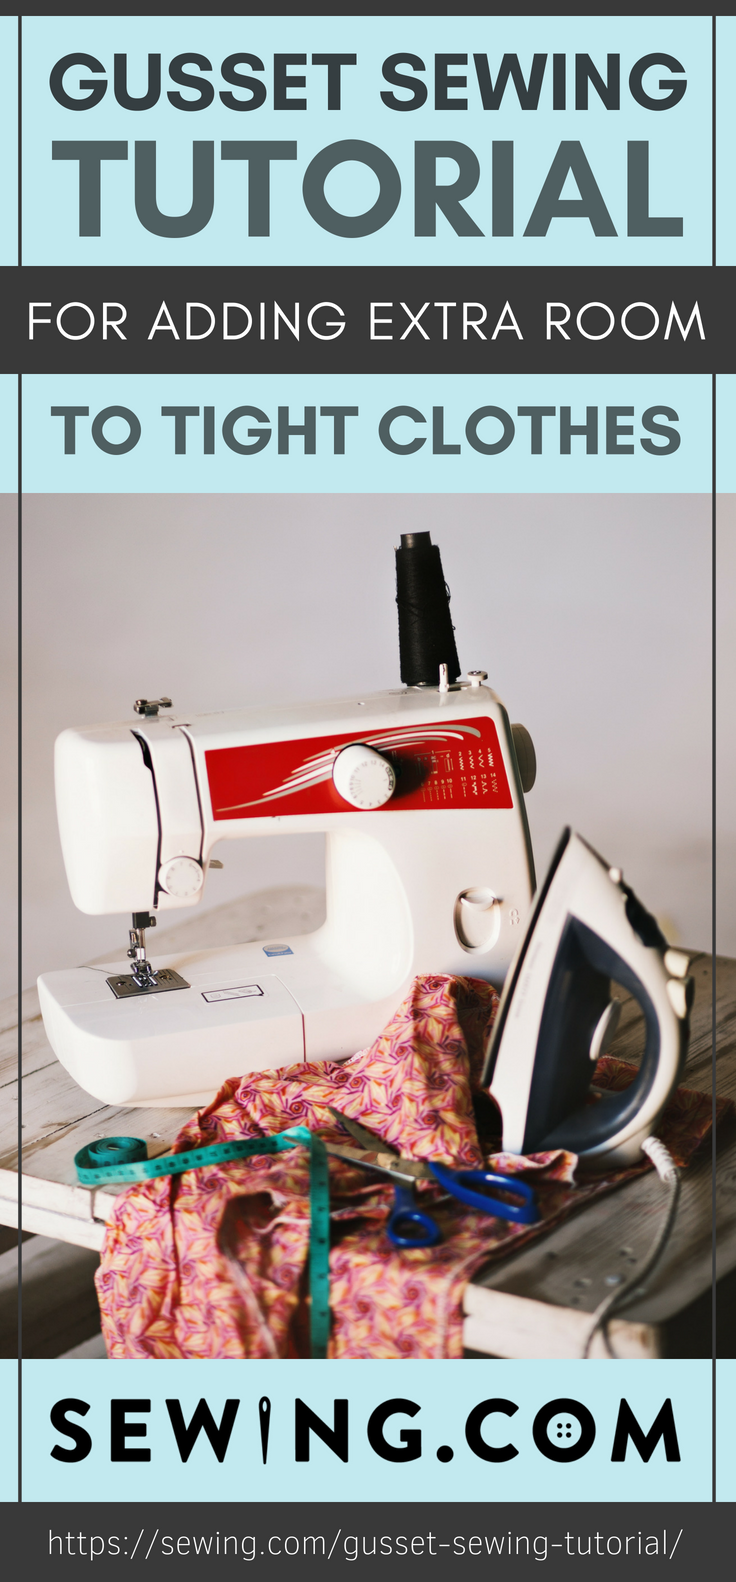 Pinterest Placard | Gusset Sewing Tutorial For Adding Extra Room To Tight Clothes